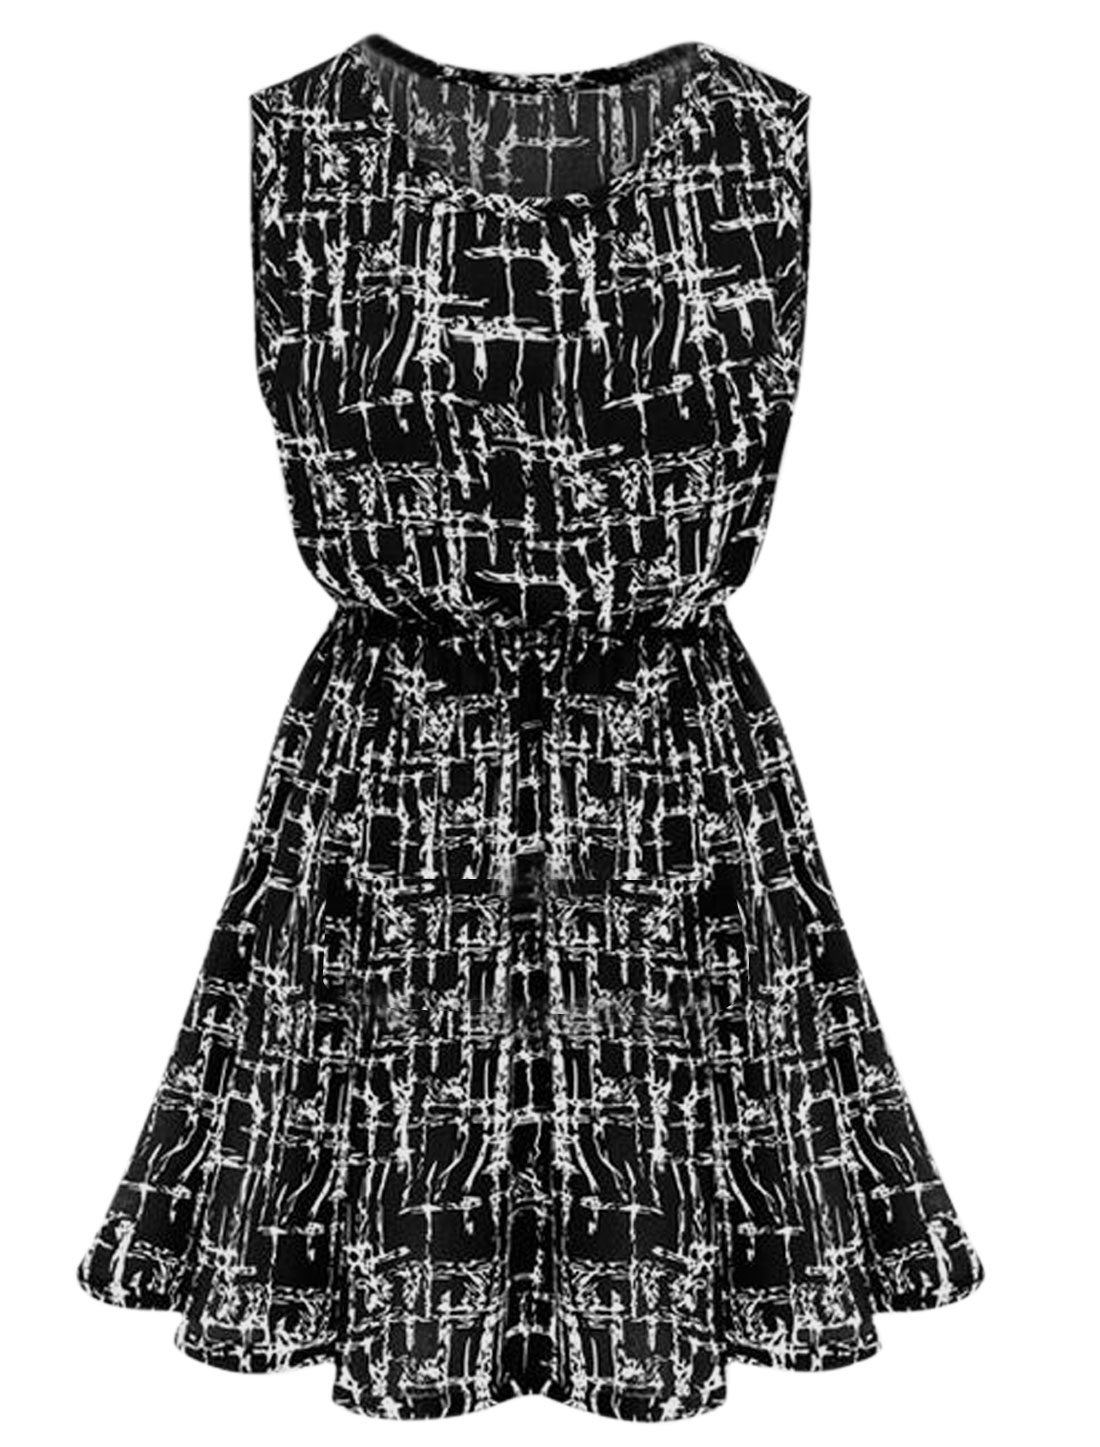 Lady Sleeveless Novelty Pattern Elastic Waist Short Dress Black M